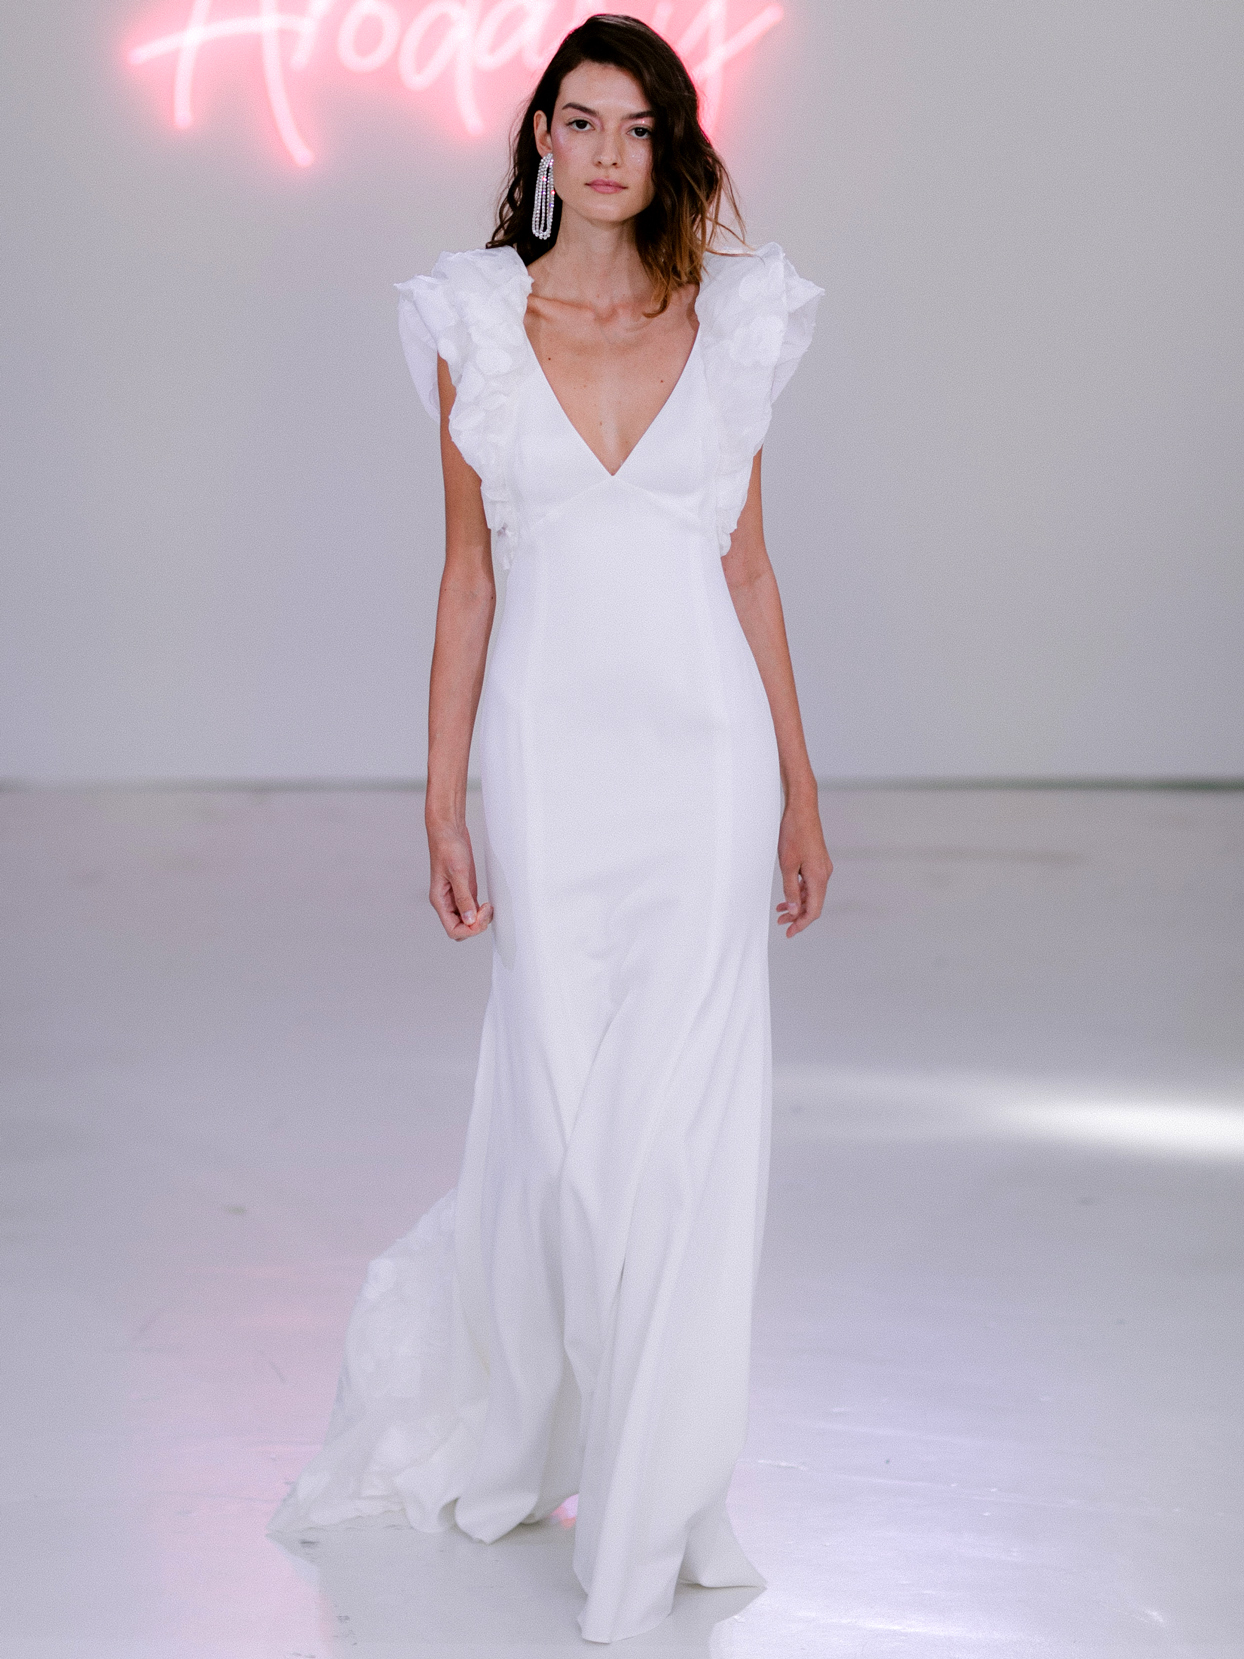 Rime Arodaky X The Mews Bridal deep v-neck short puffed sleeves wedding dress fall 2020